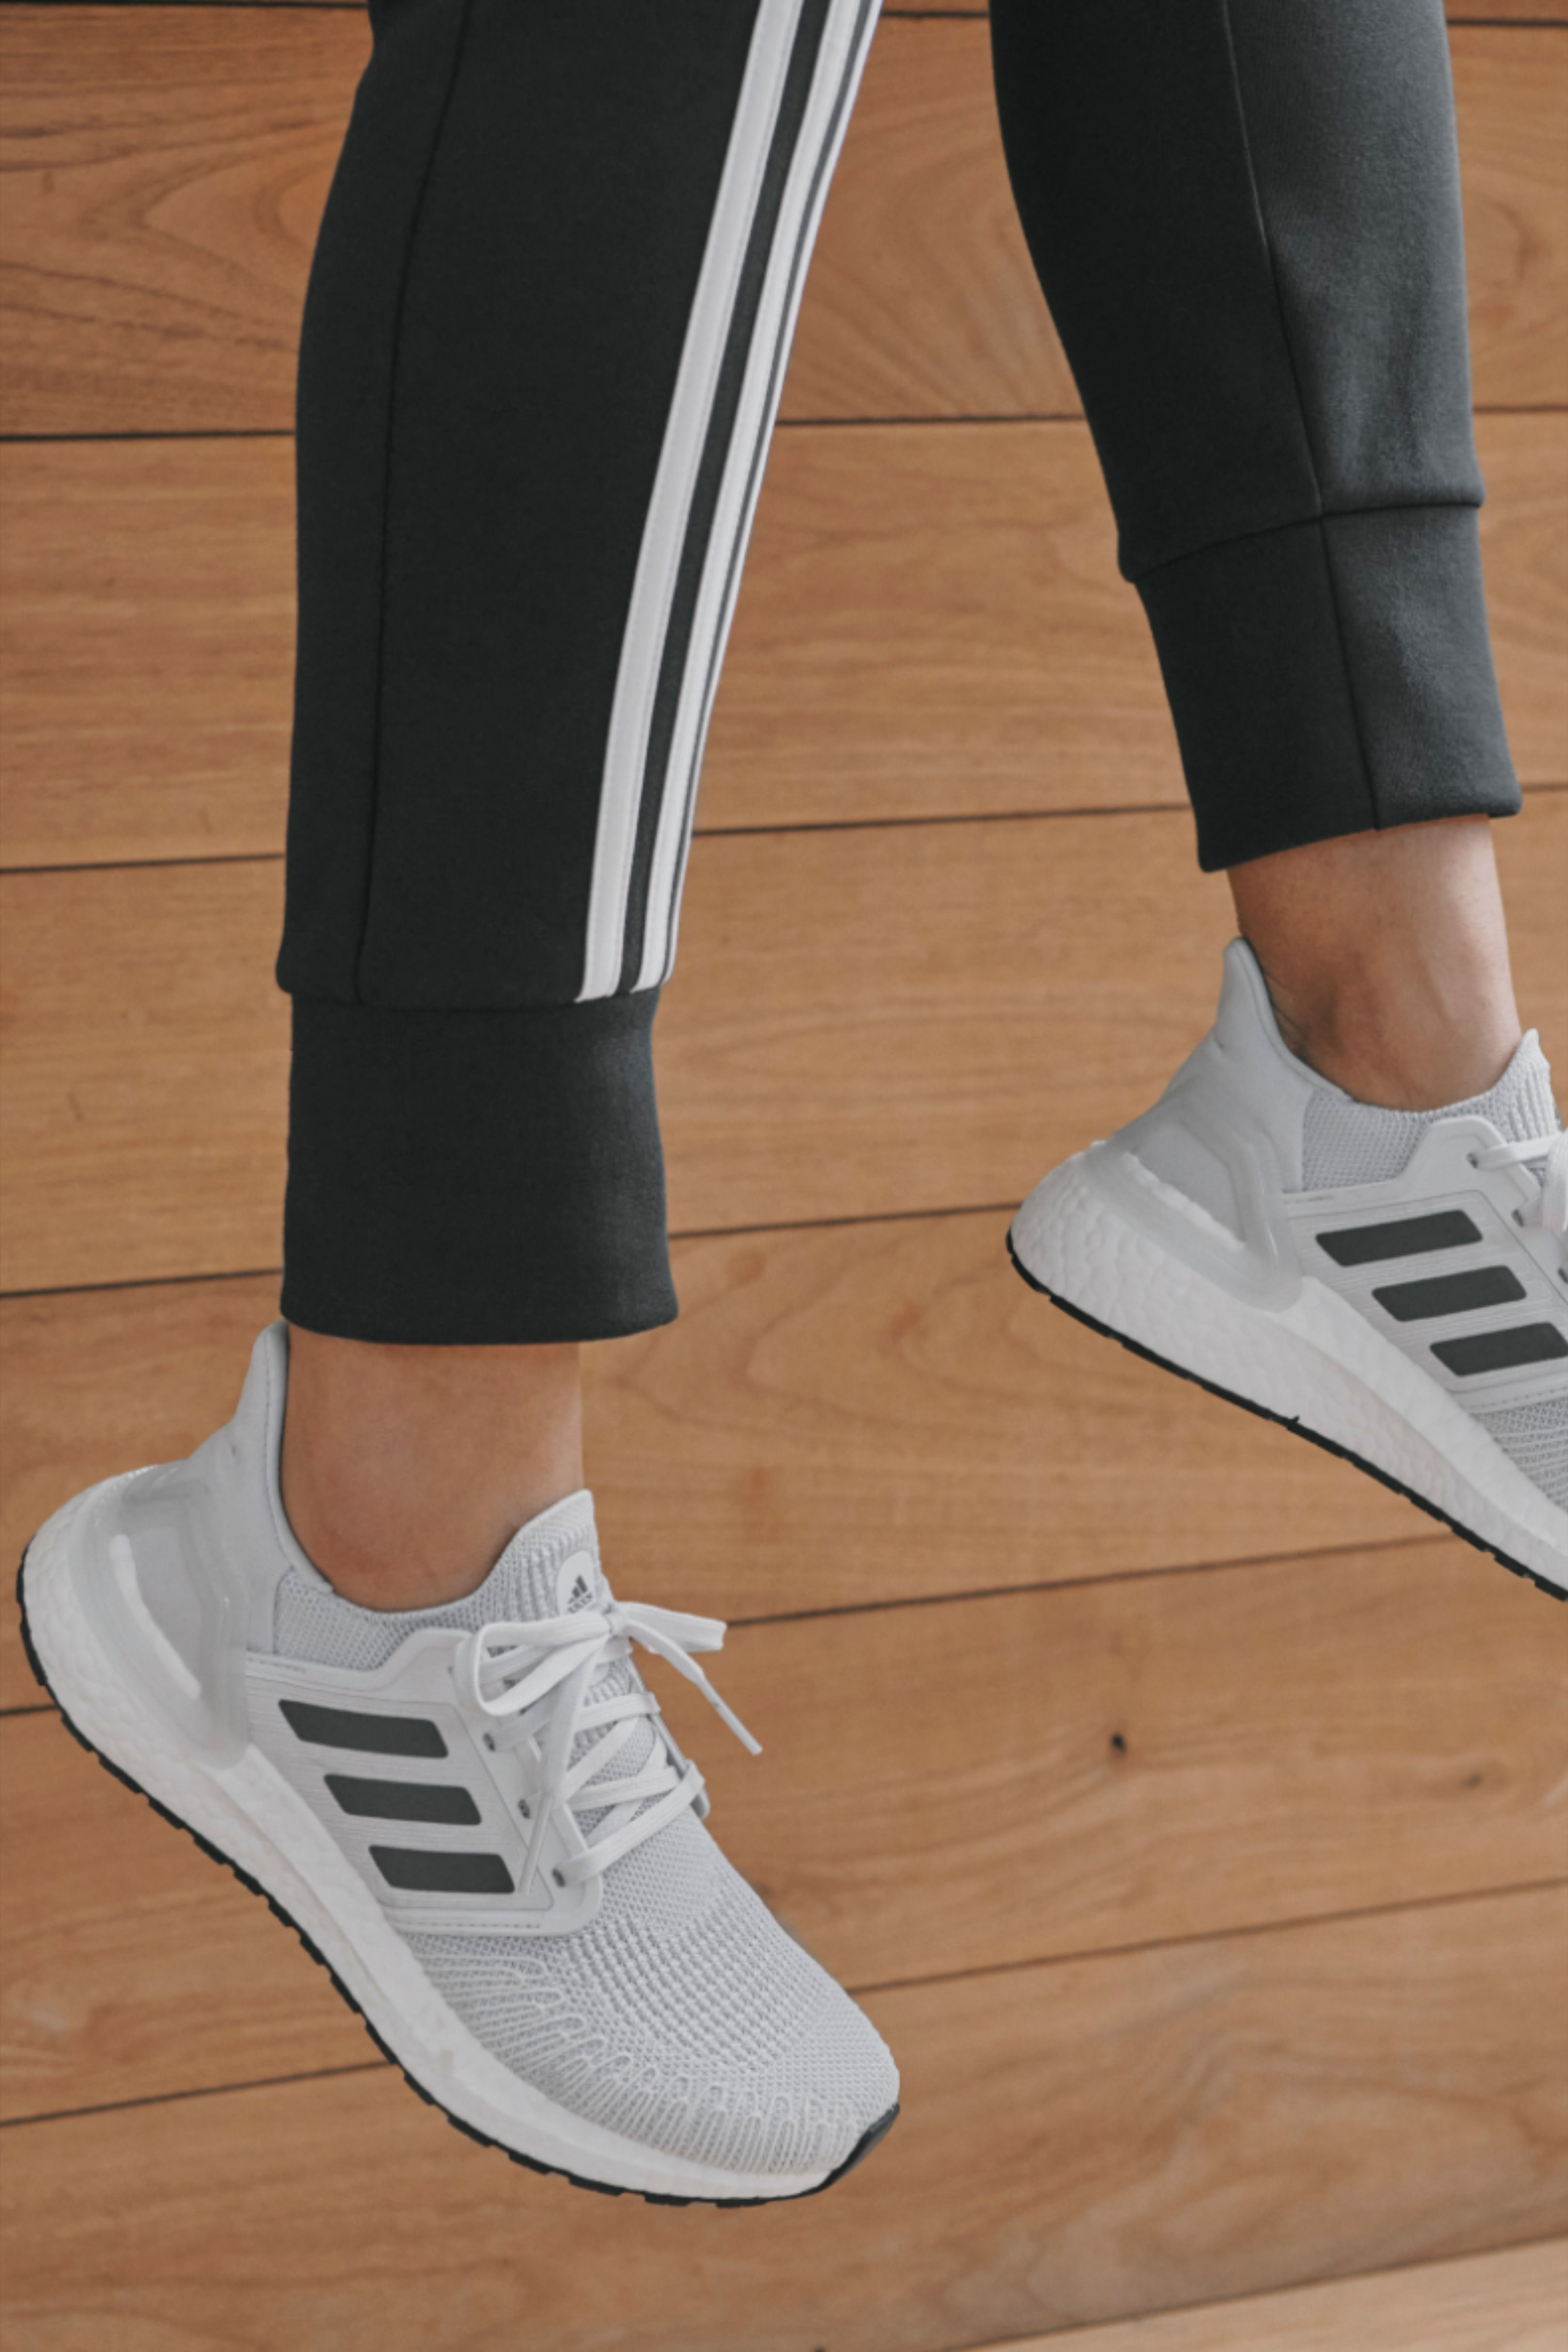 adidas Ultraboost 20 - comfort for your